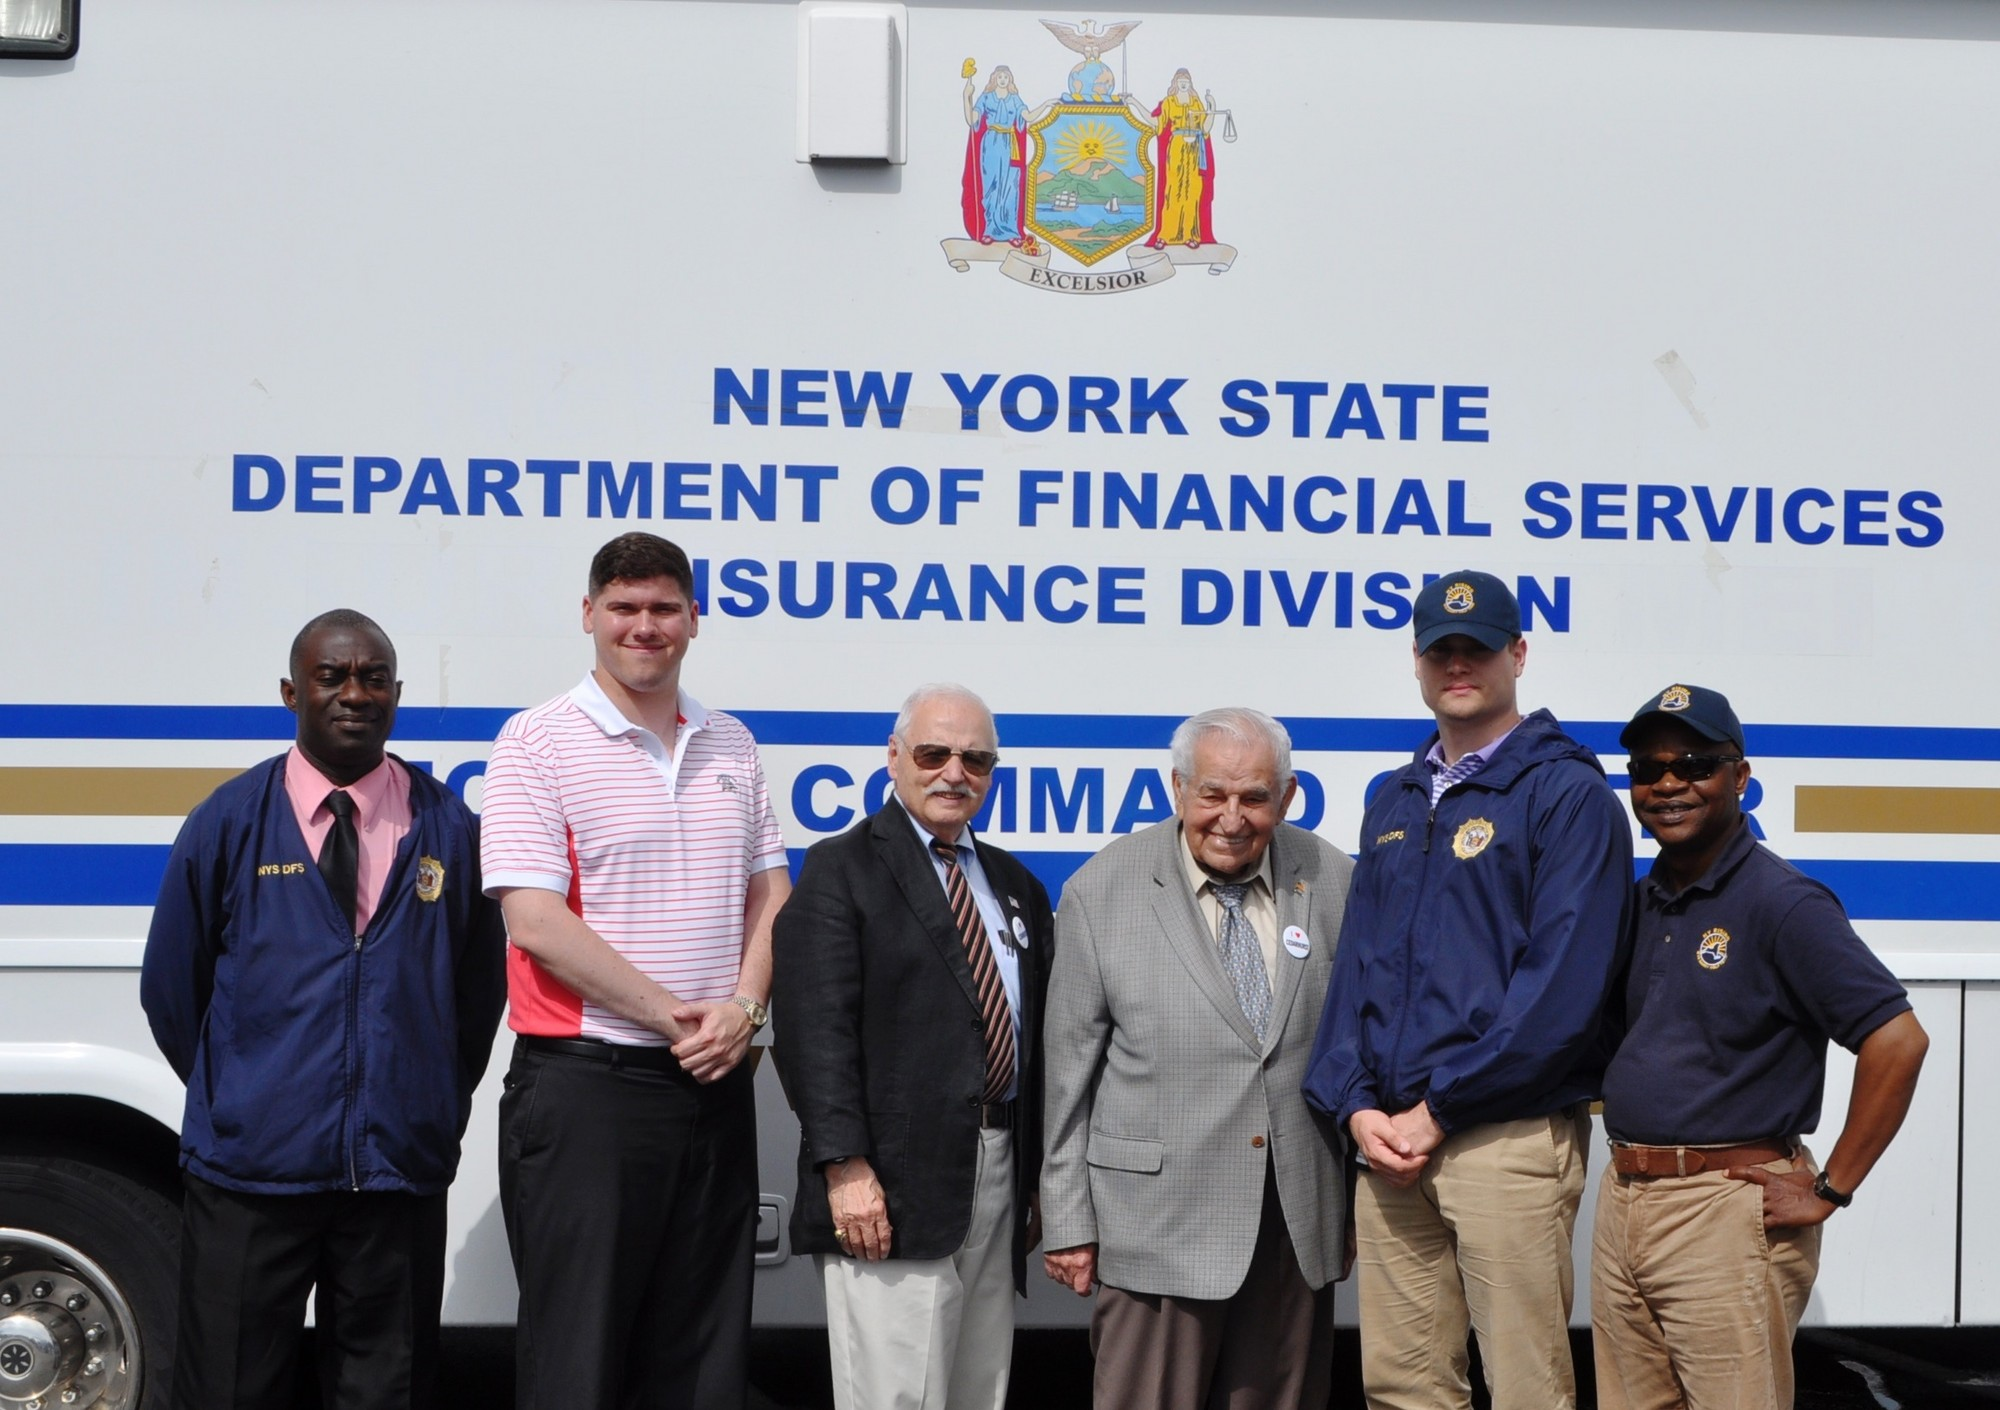 Hurricane Sandy victims received assistance from the state's Department of Financial Services outside of Cedarhurst Village Hall. Clivell R. Wilson, Michael Romano, Trustee Ron Lanzilotta, Mayor Andrew J. Parise, Mathew Meyer and Cyprian M. Osutl.